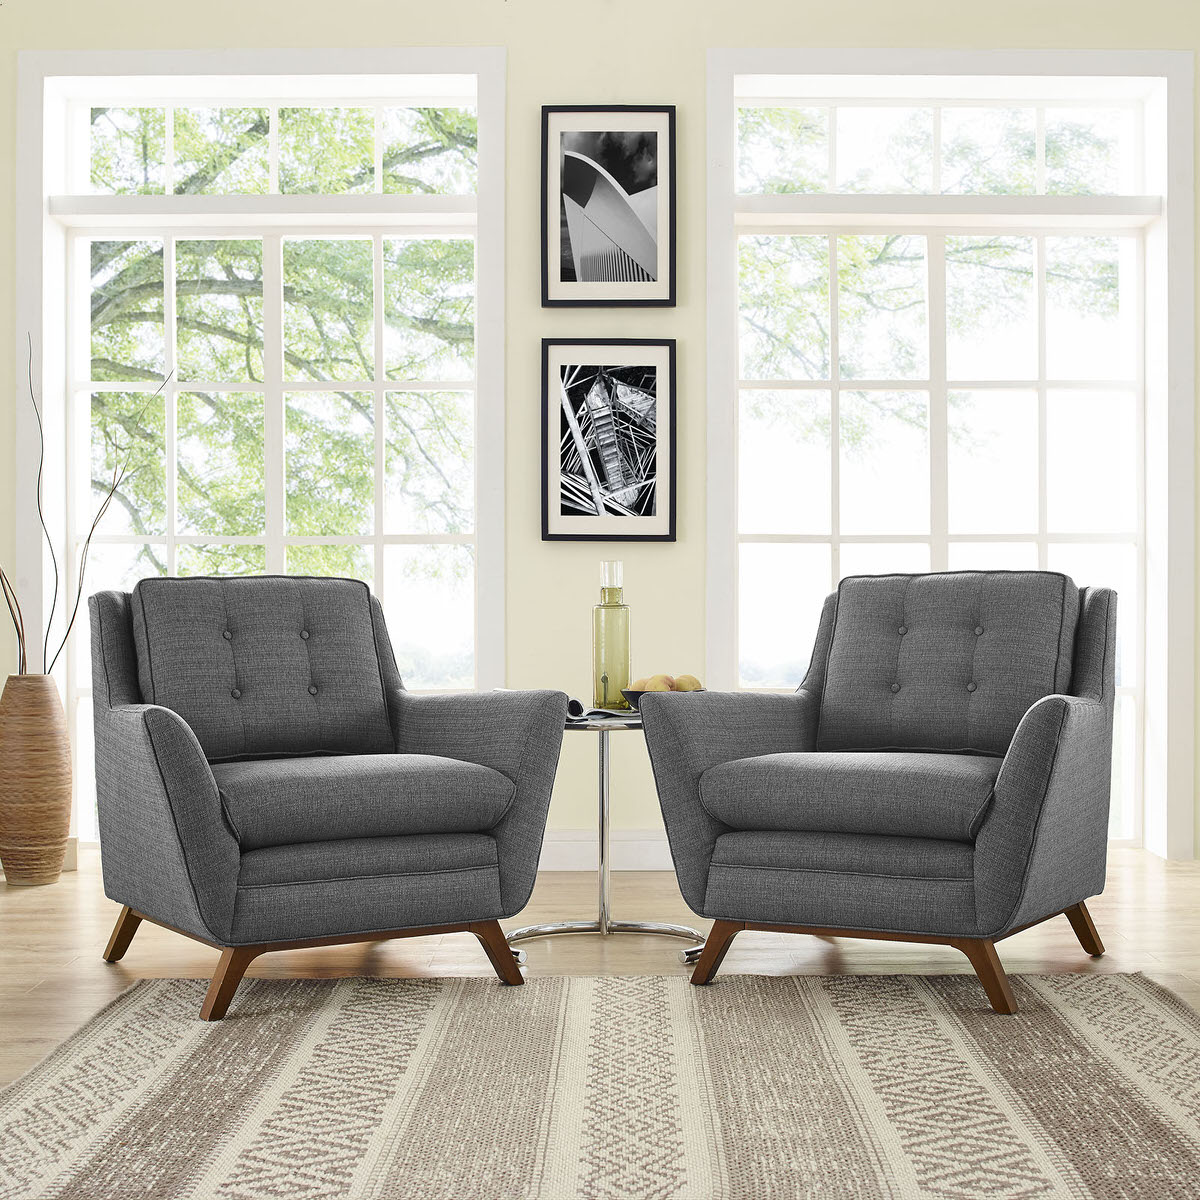 Beguile 2 Piece Upholstered Fabric Living Room Set Gray by Modern Living